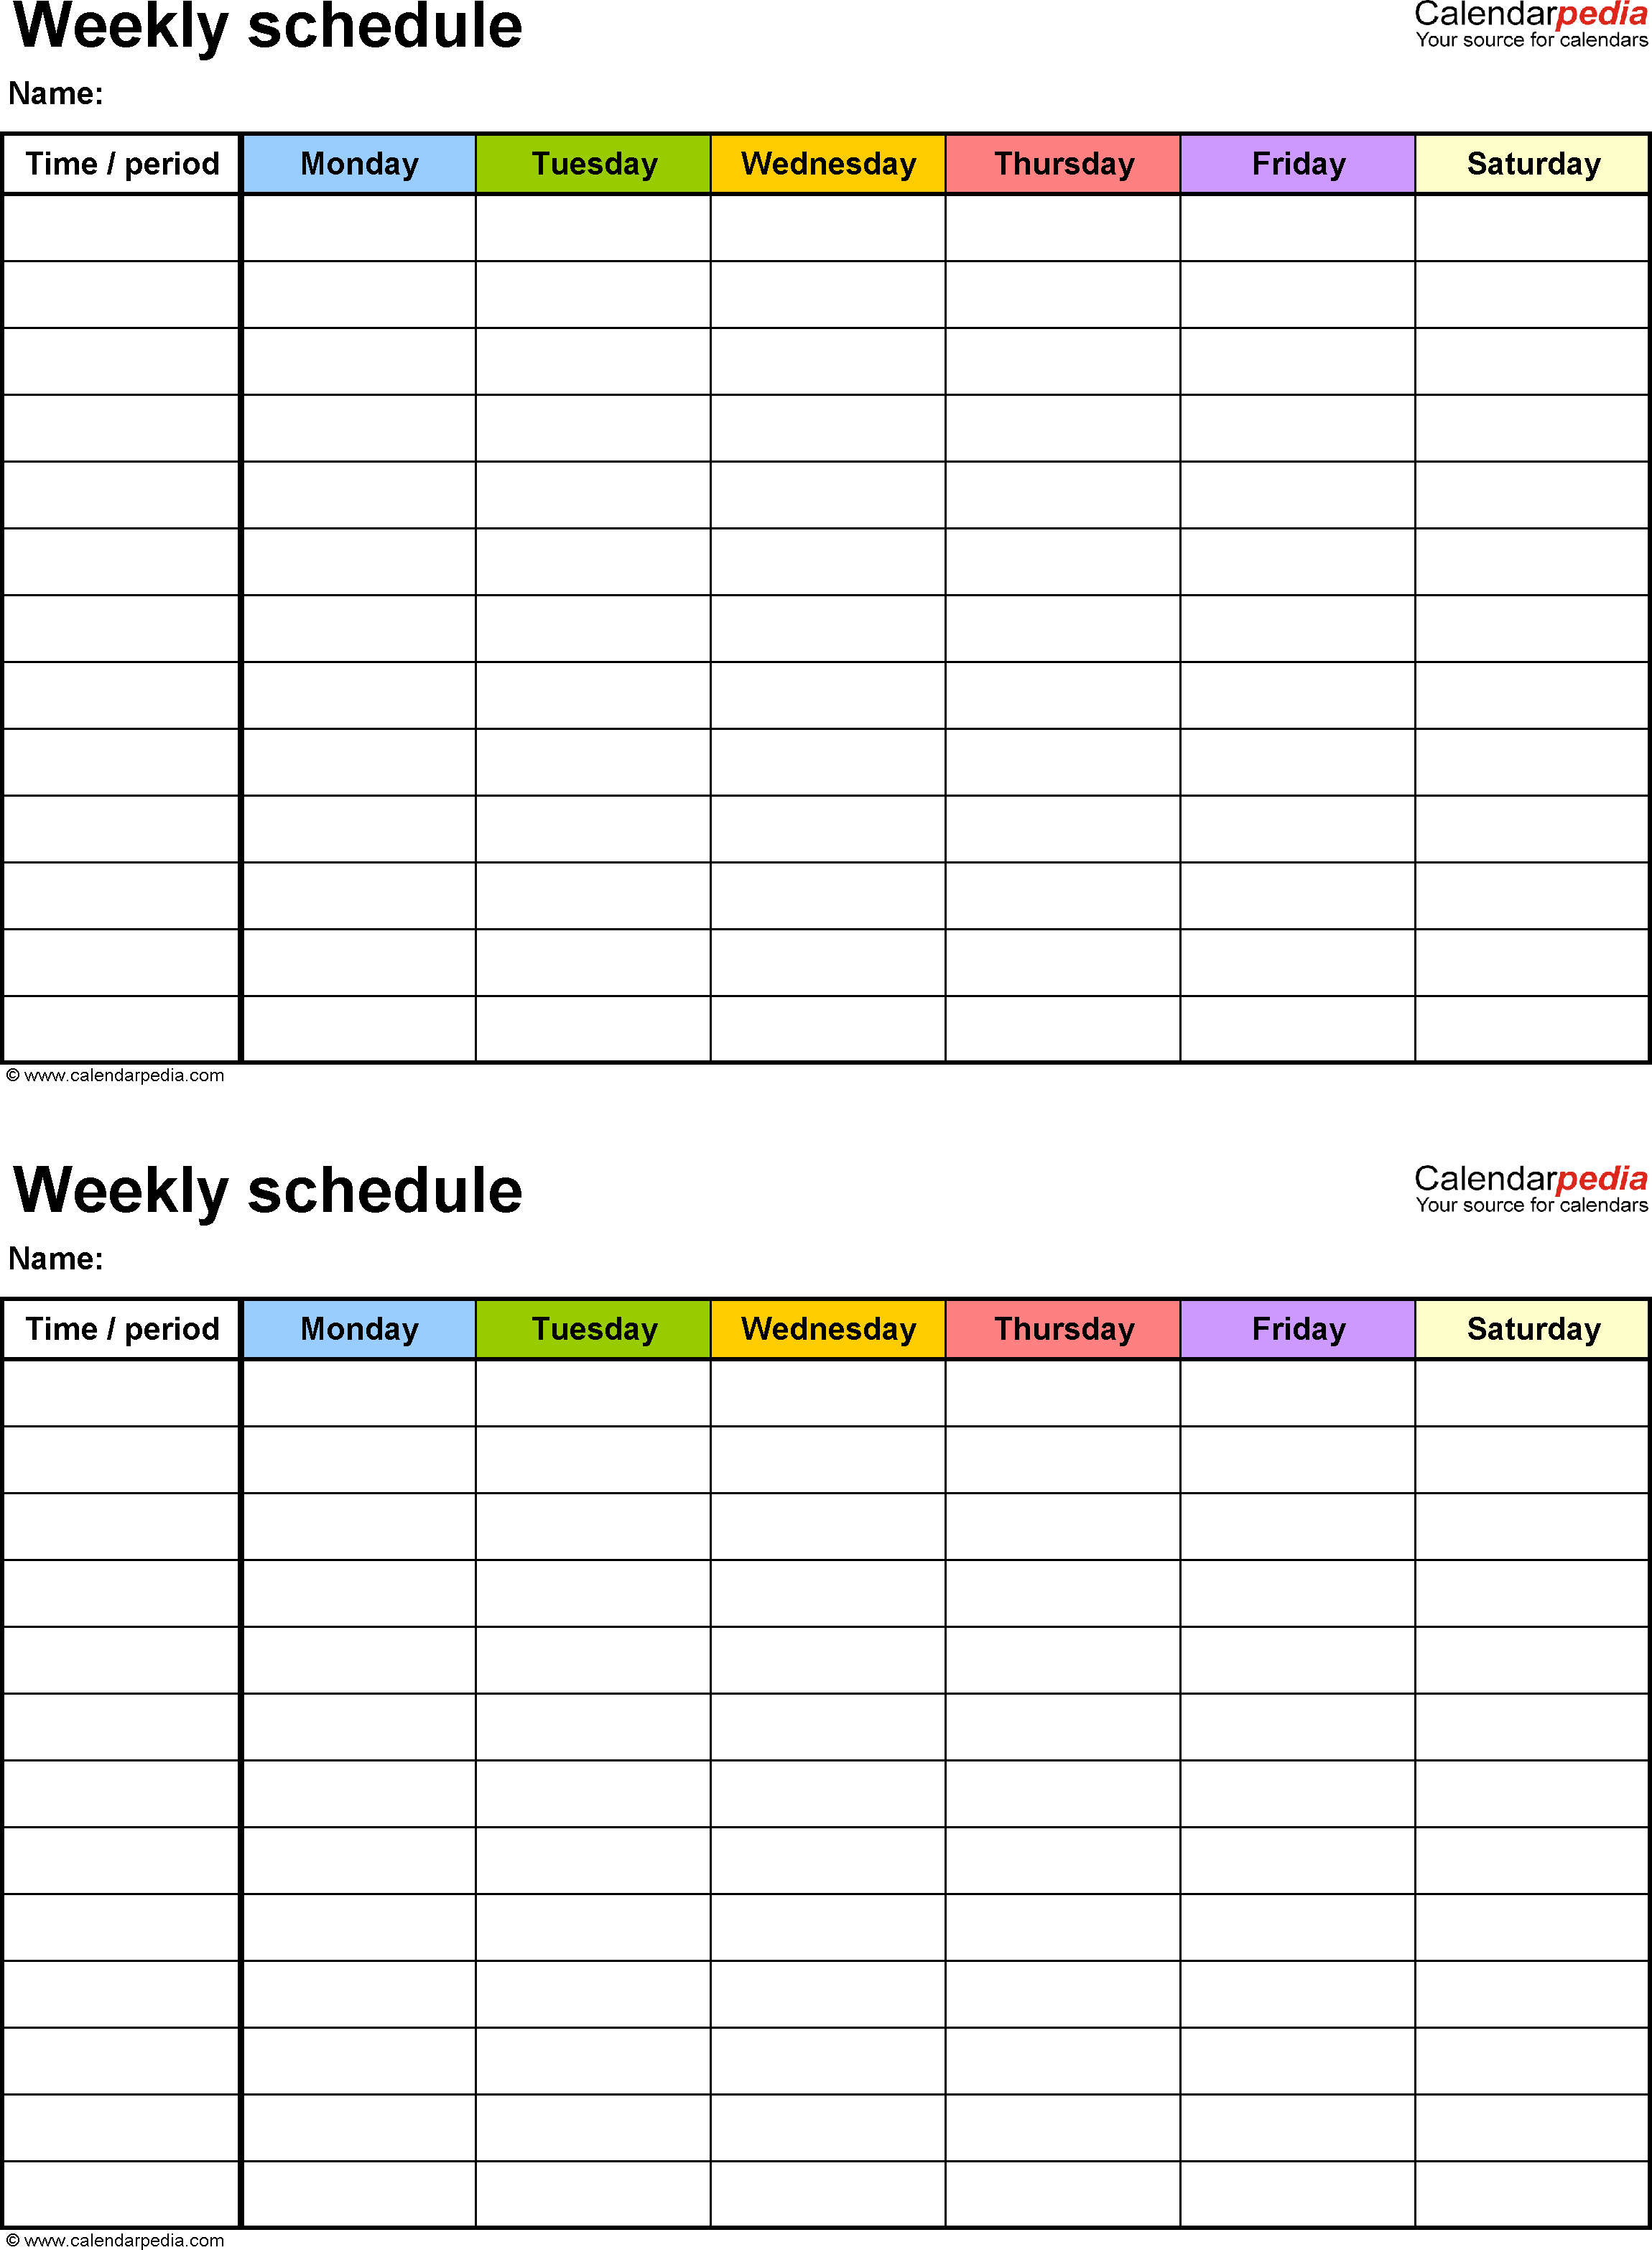 Free Weekly Schedule Templates For Word - 18 Templates with Printable Blank Weekly Employee Schedule